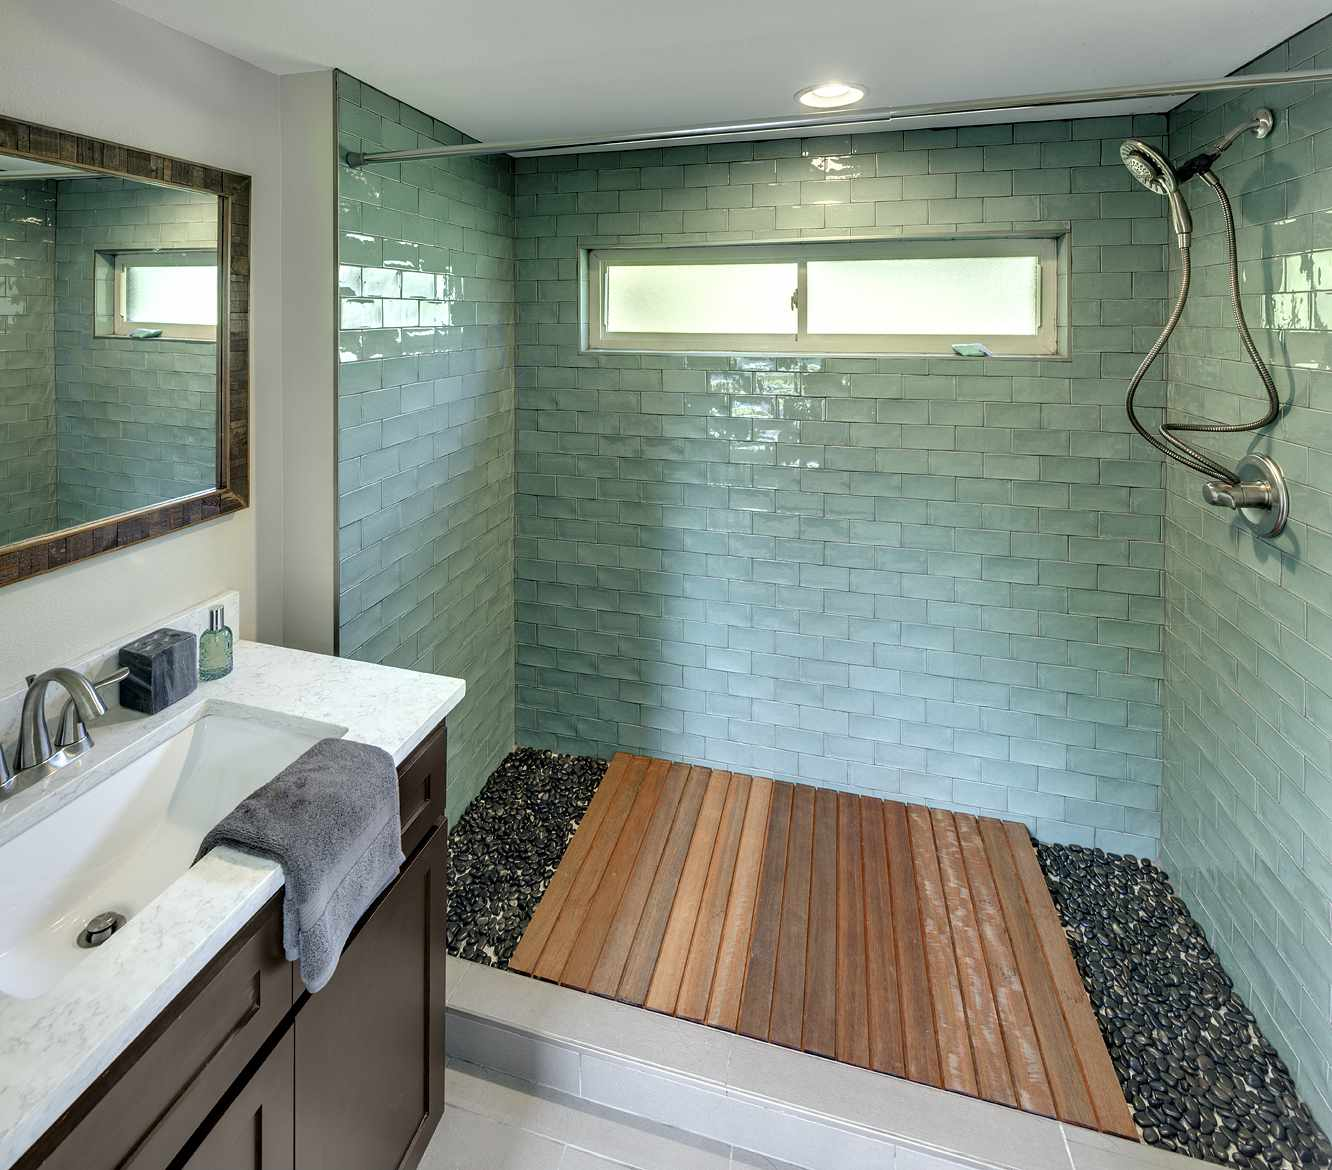 Shower with wooden floor bordered by stones